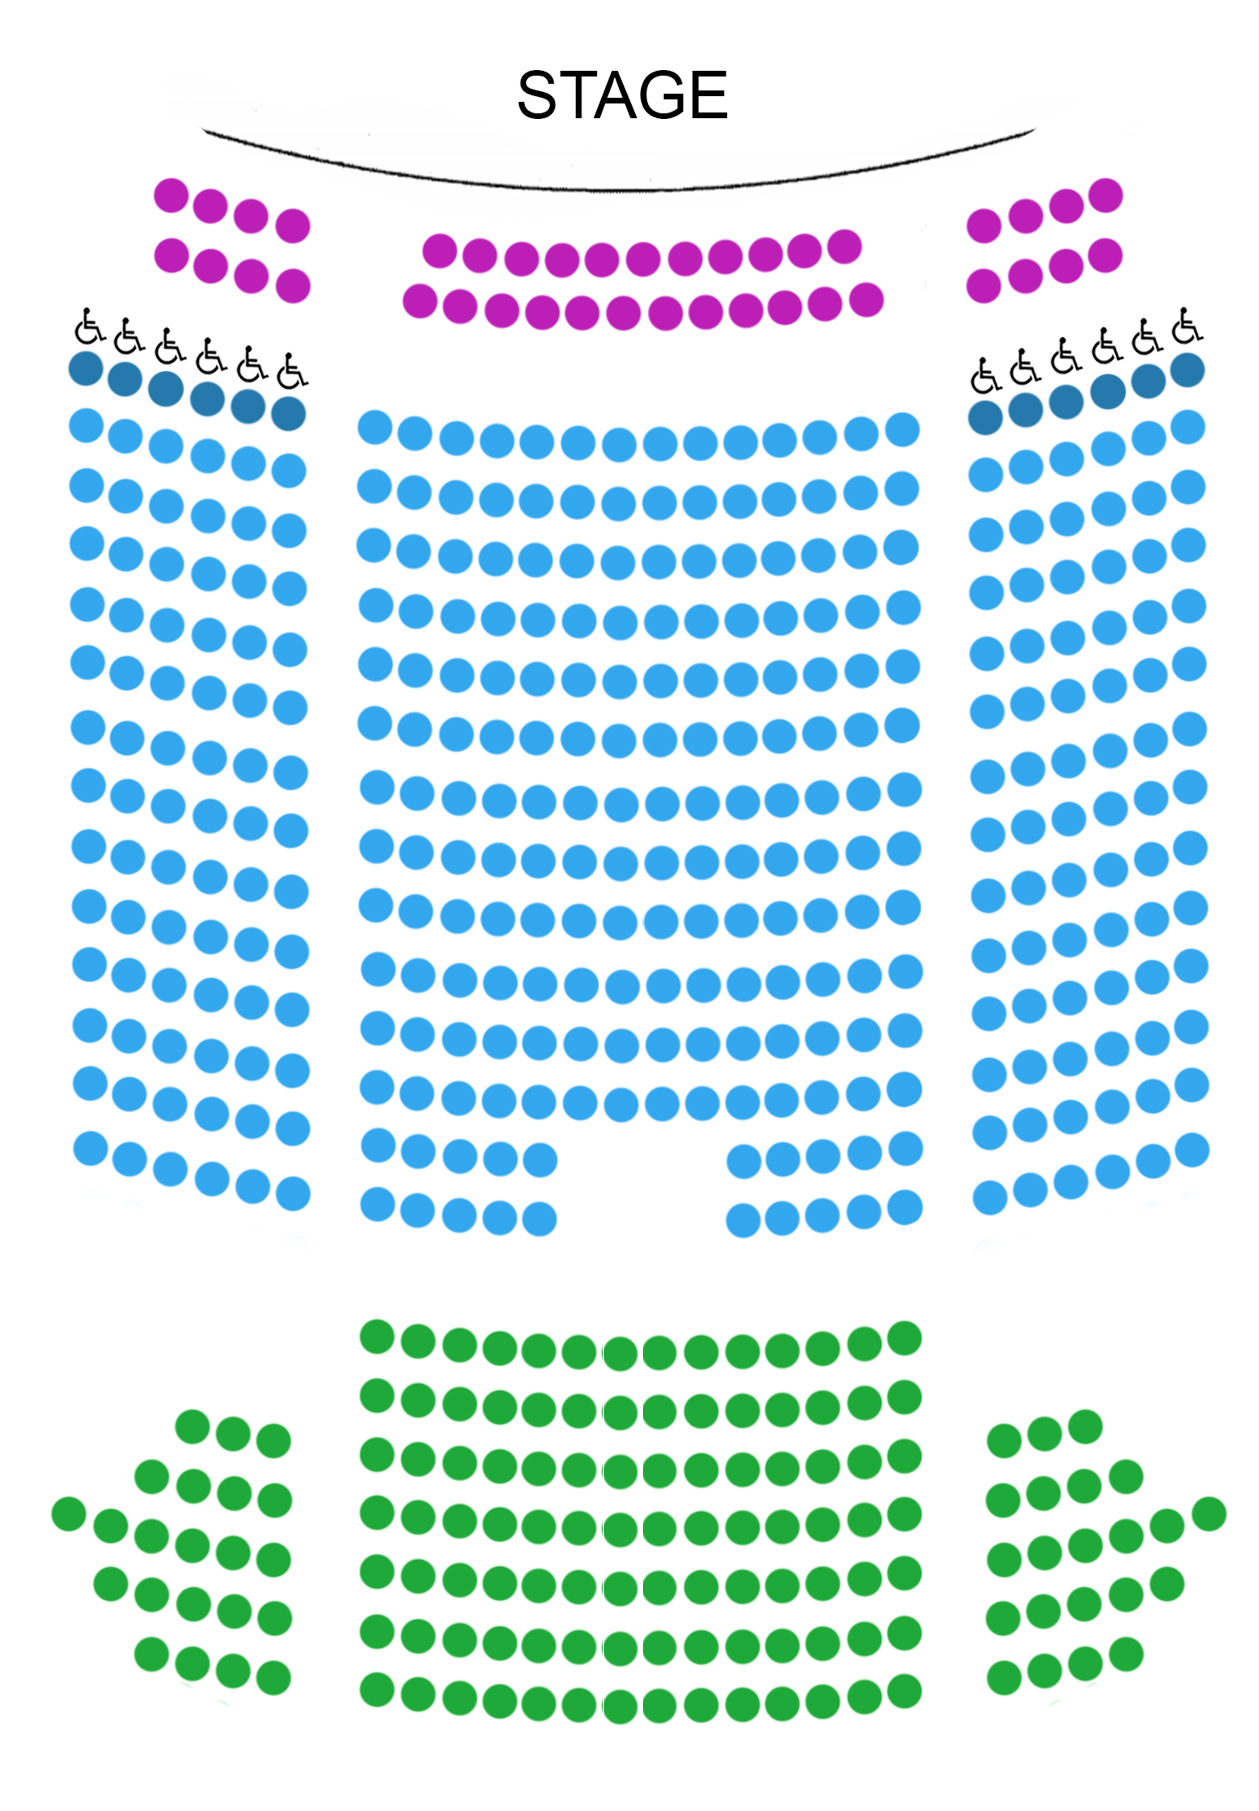 Montreal seating map